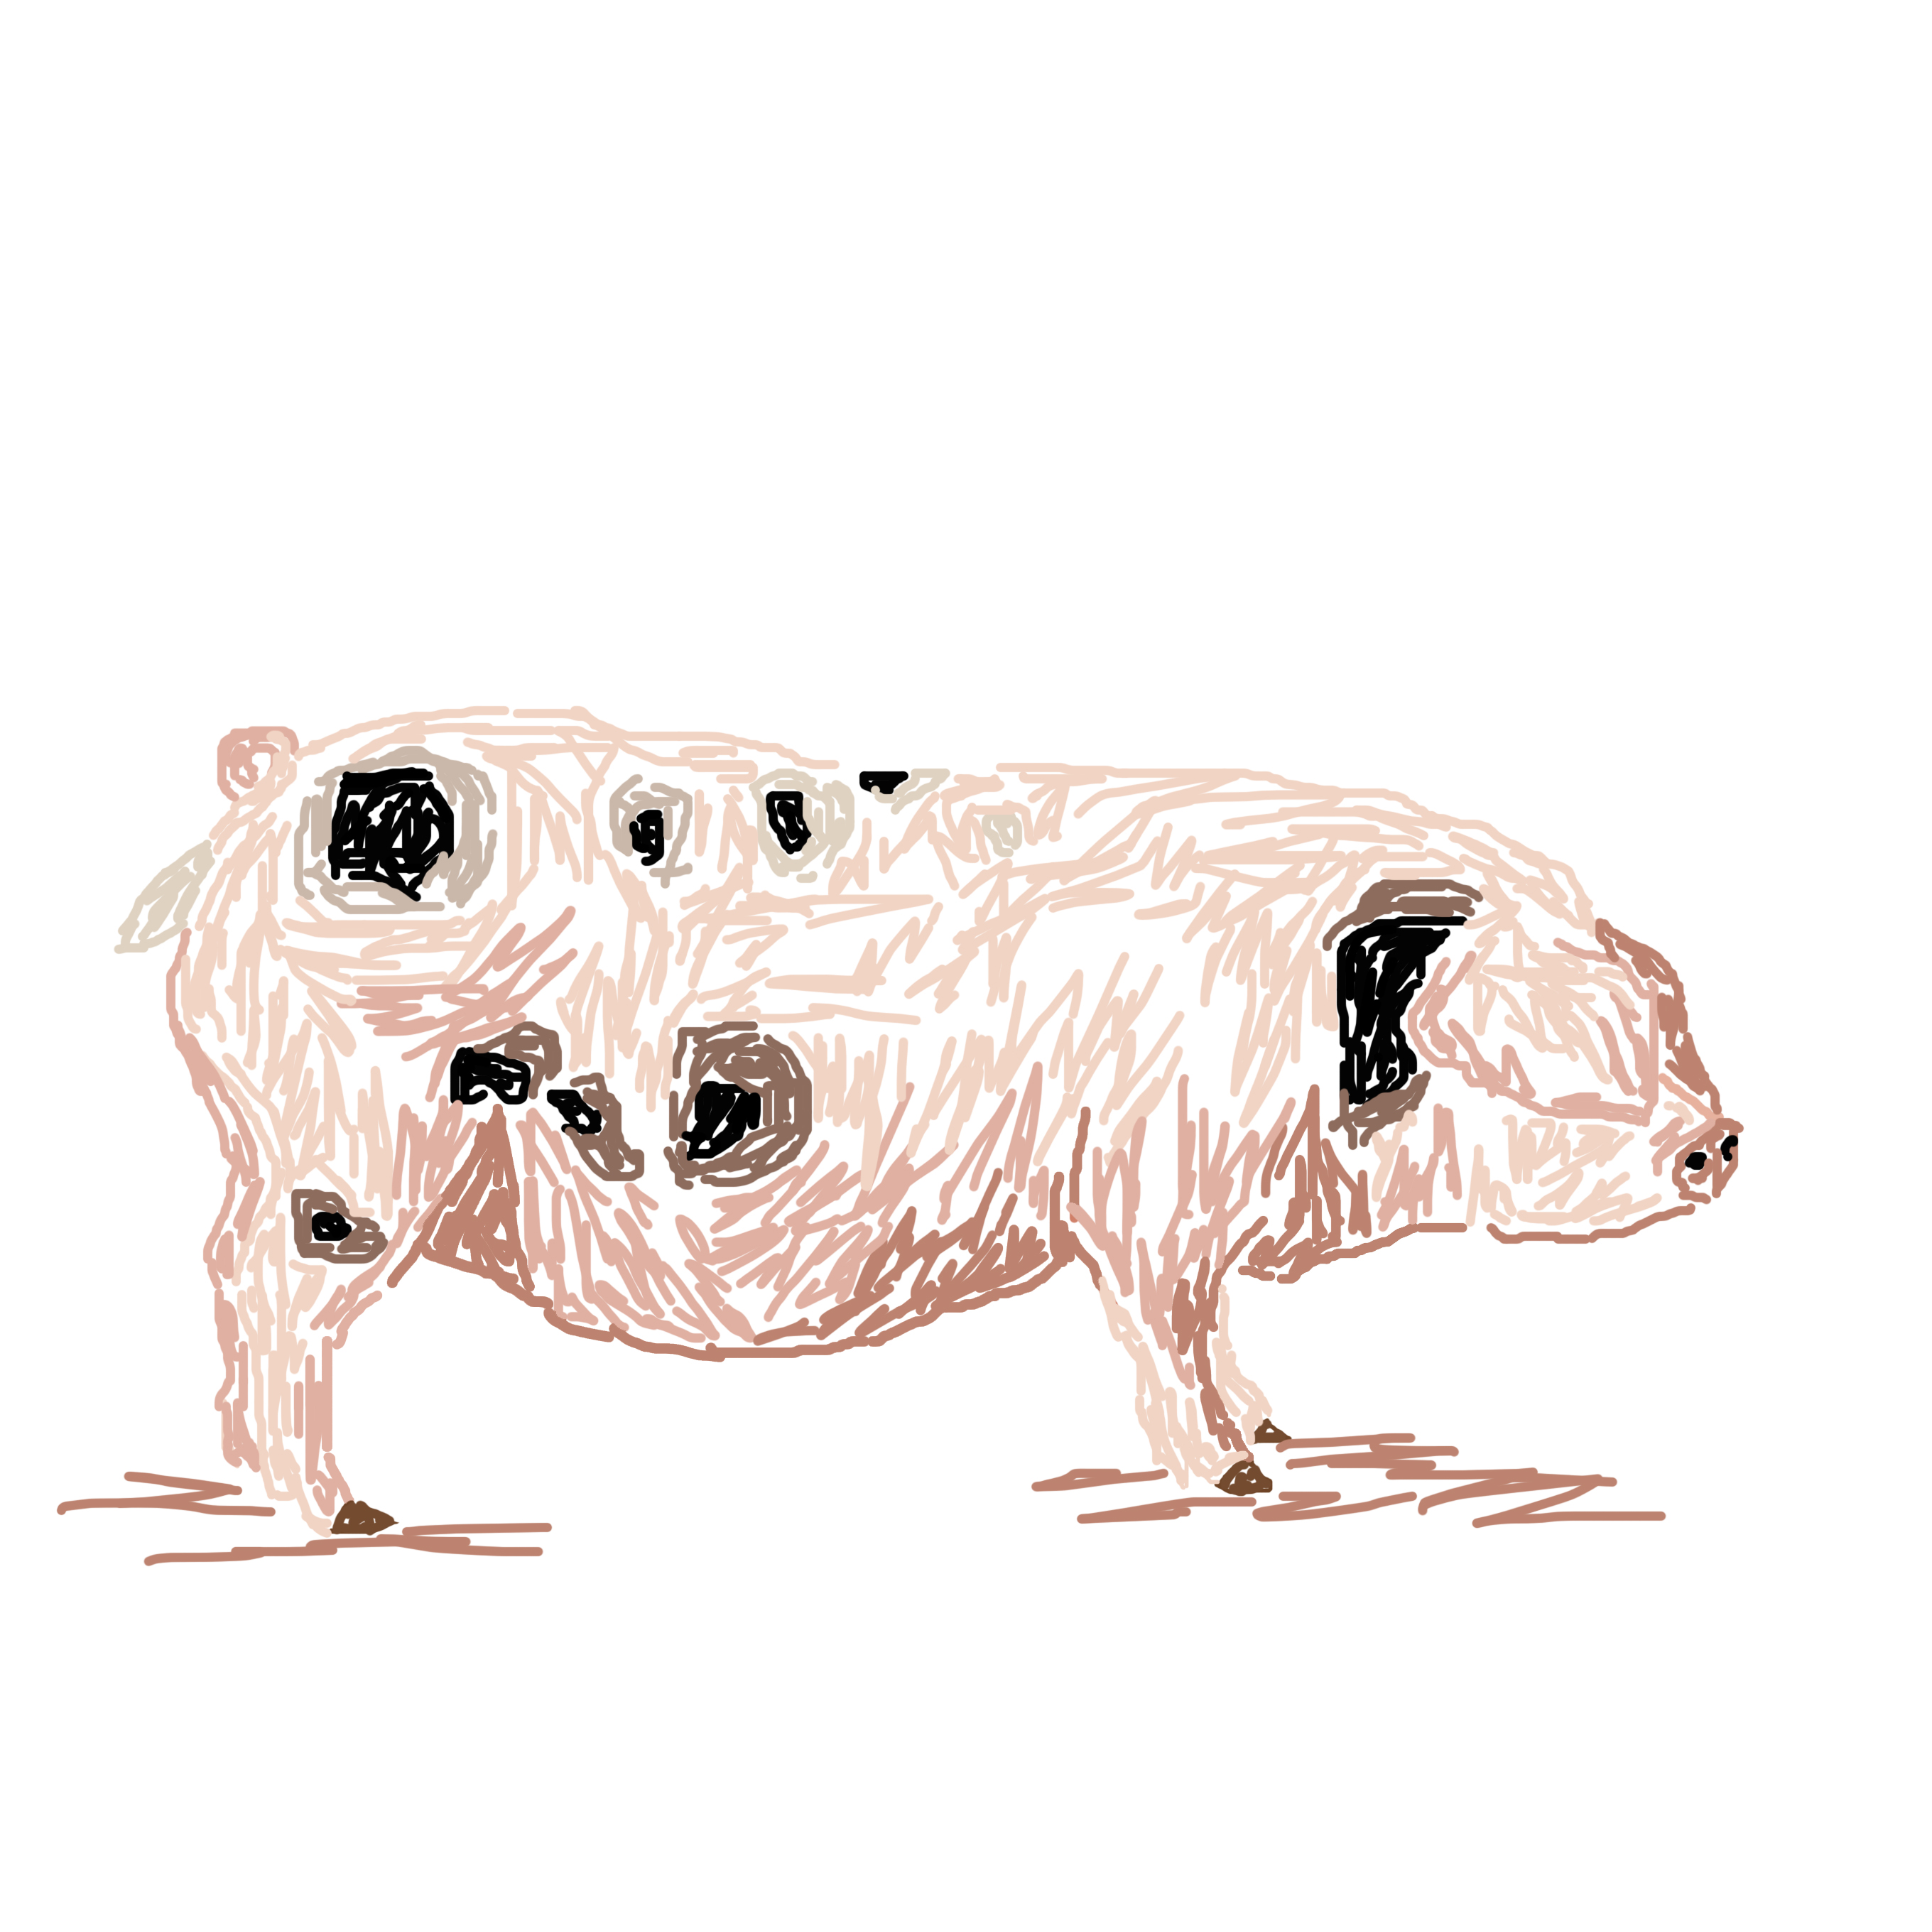 Pig and pheasant card design simon andrew designs greetings card pig card greetings card kristyandbryce Gallery